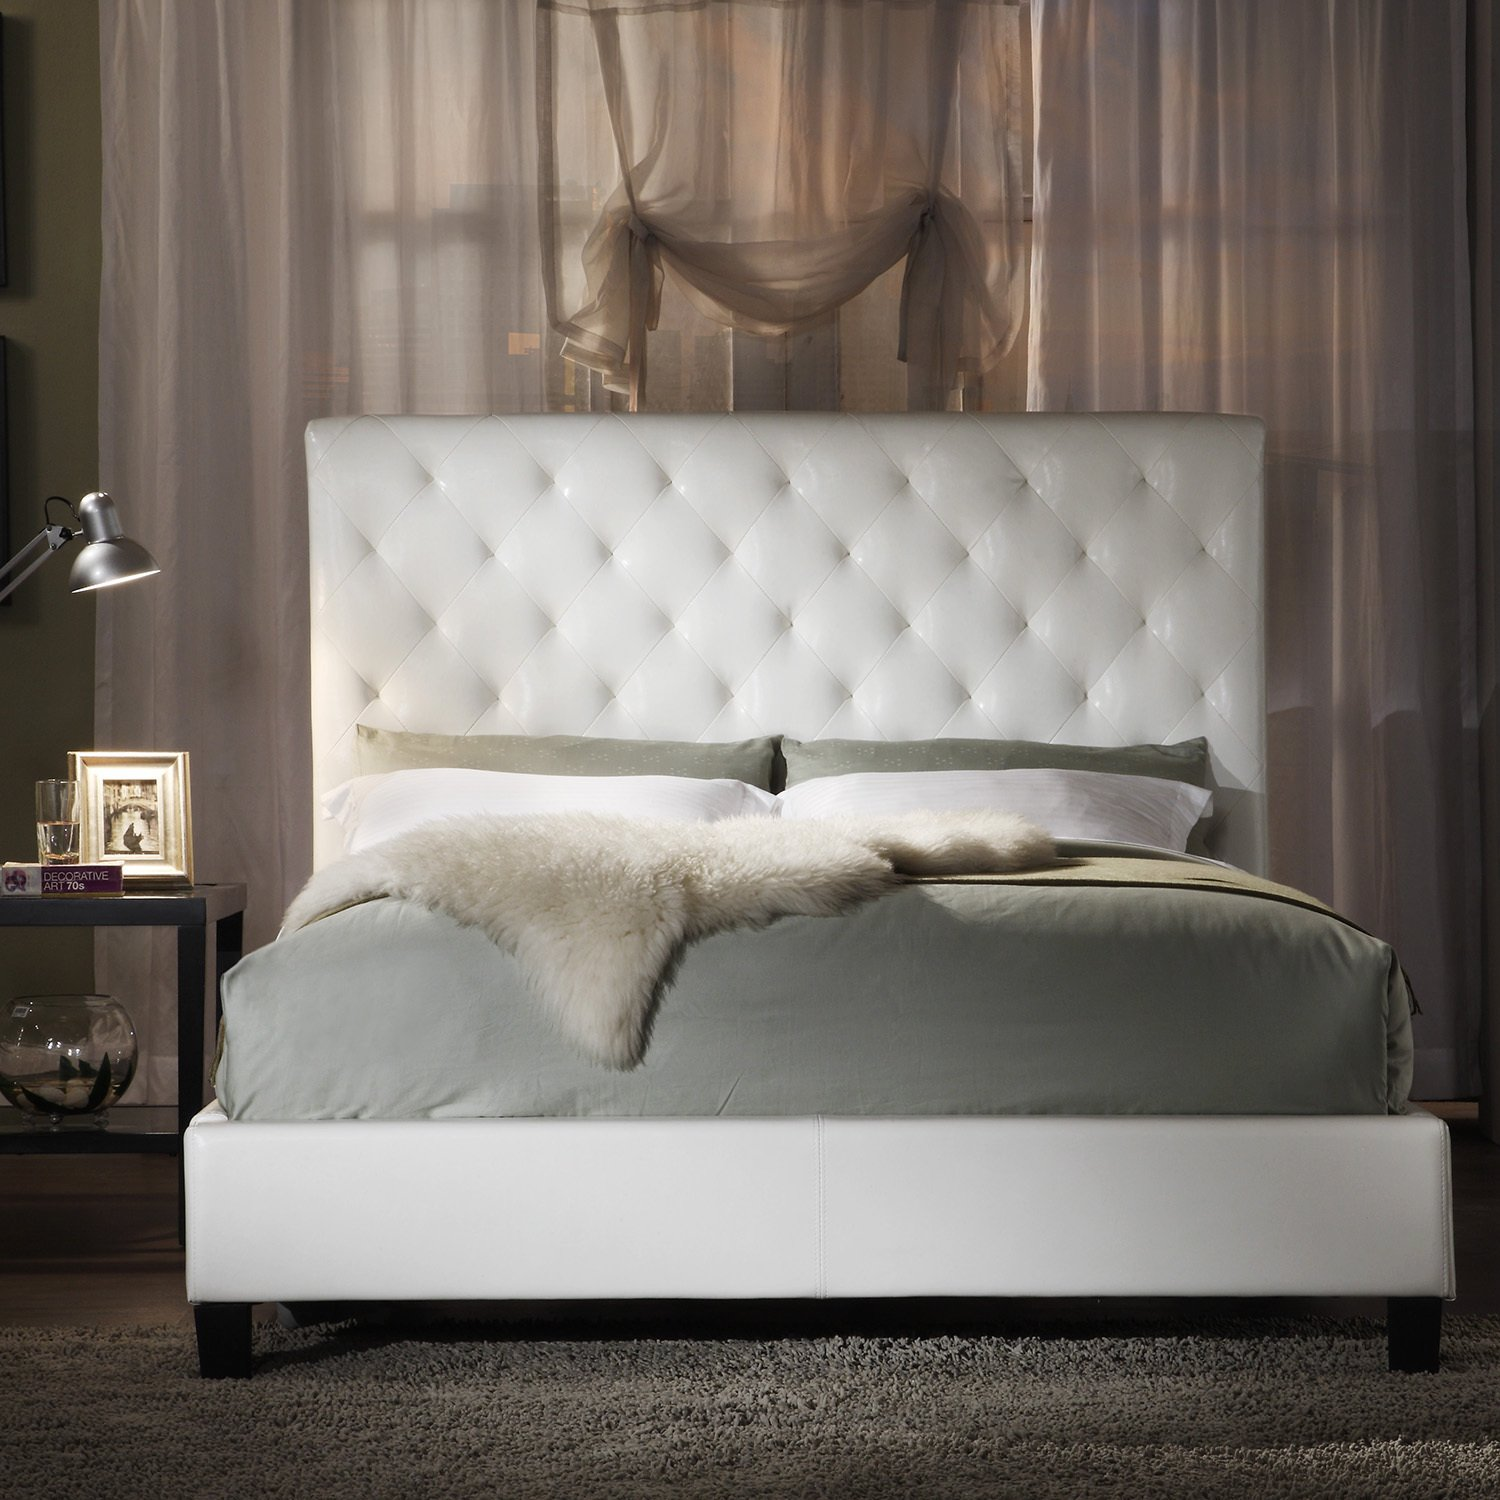 Design Tufted Bed amazon com metro shop tribecca home sophie white bonded leather tufted queen sized upholstered platform bed size tuf